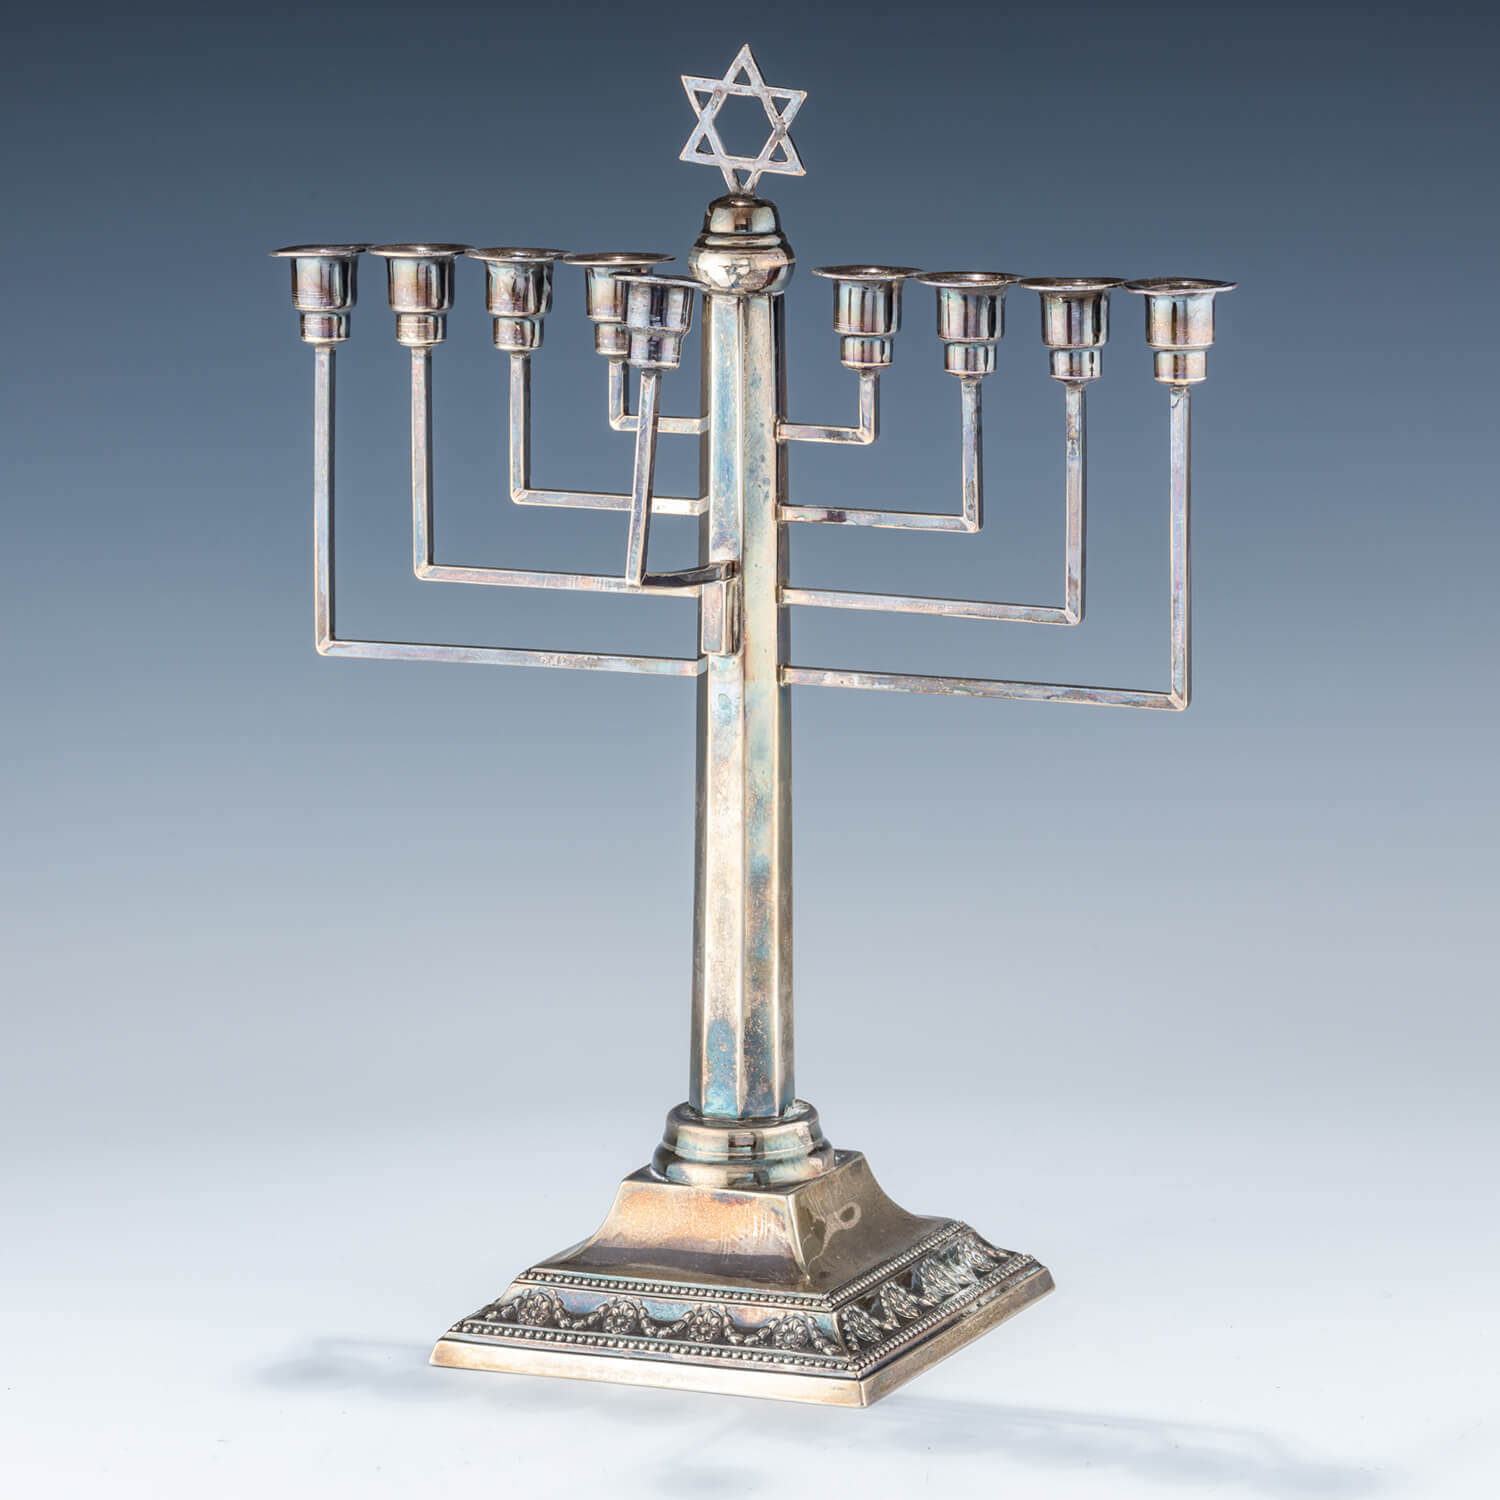 104. A STERLING SILVER HANUKKAH MENORAH BY MORRIS SALKIND